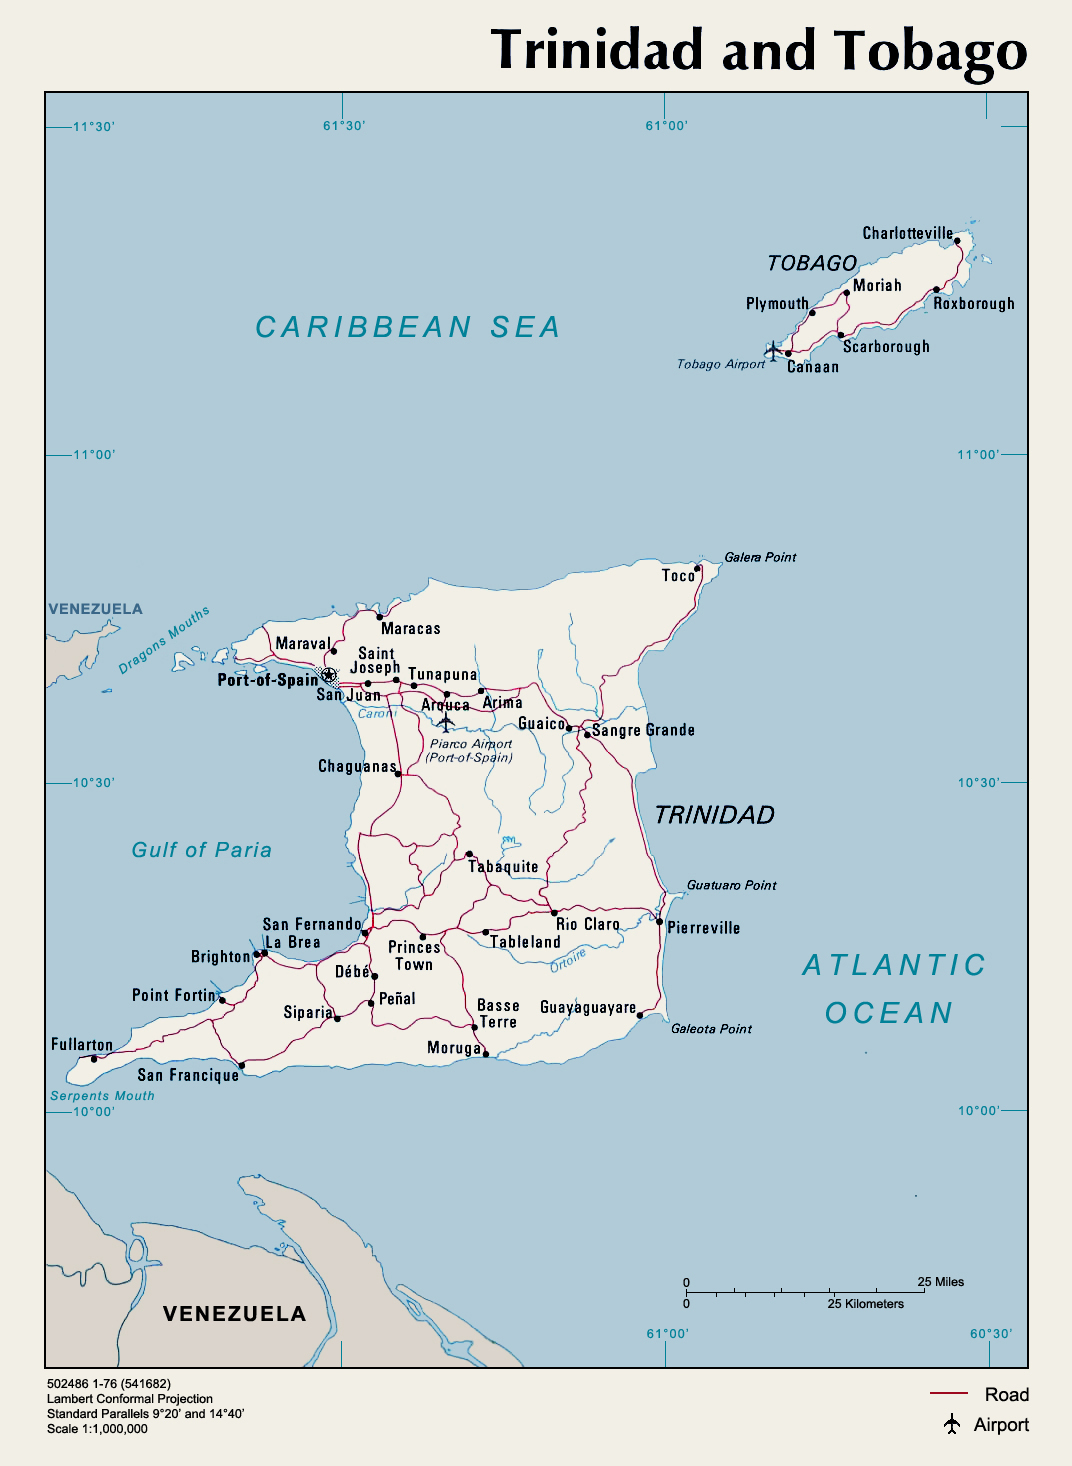 Trinidad And Tobago Detailed Political Map With Cities And Roads - Trinidad and tobago map